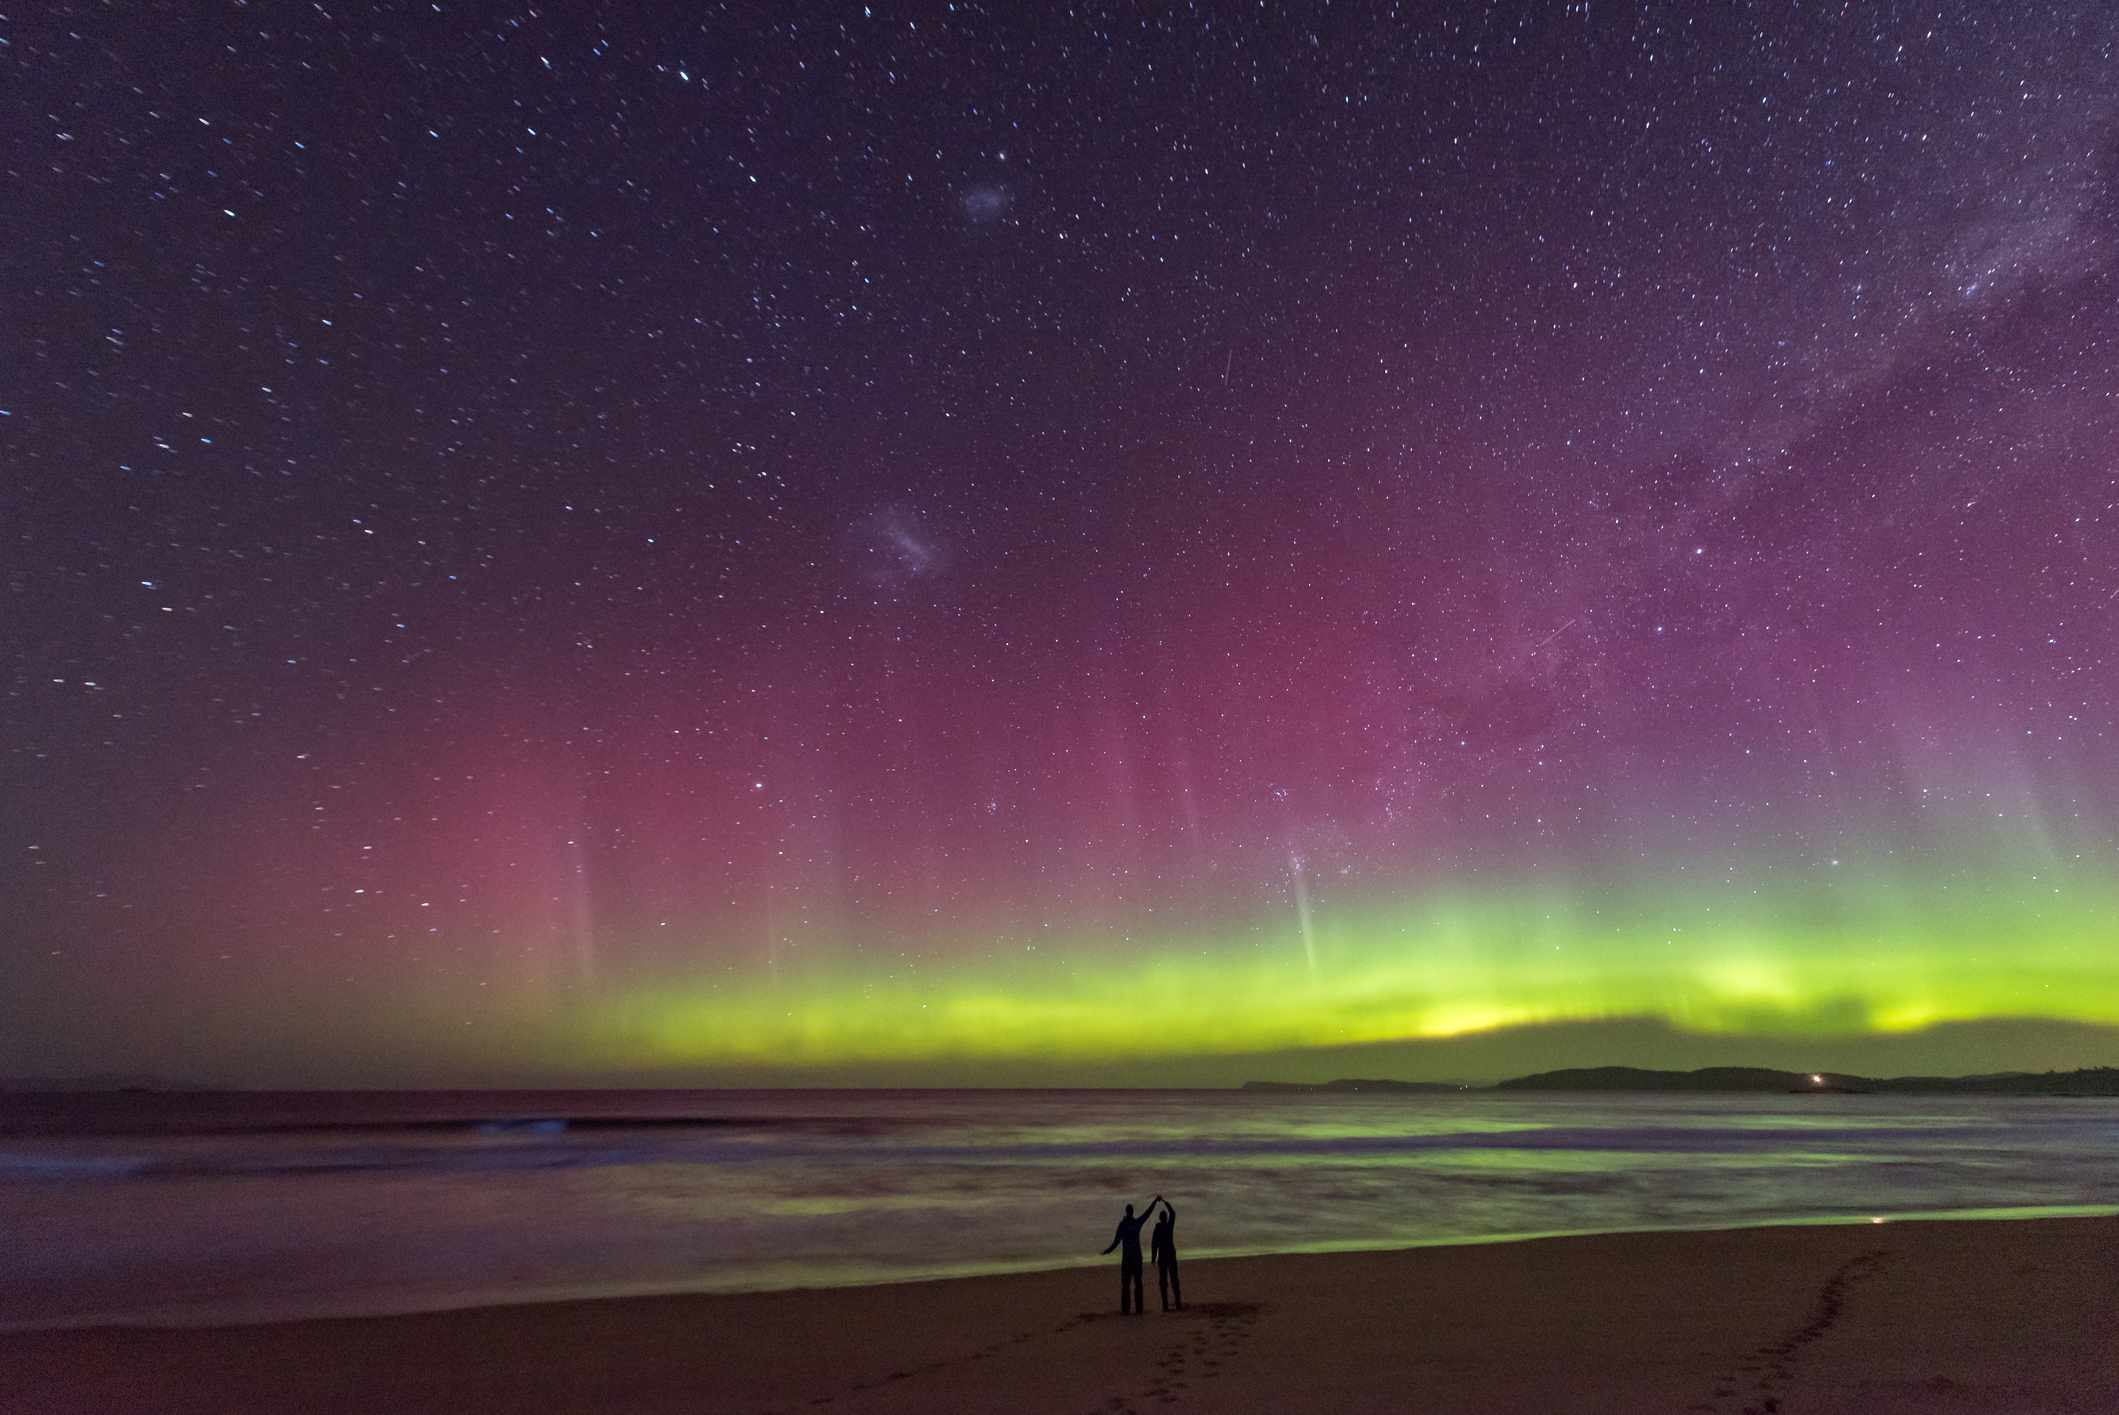 Couple standing on a beach under purple and green light